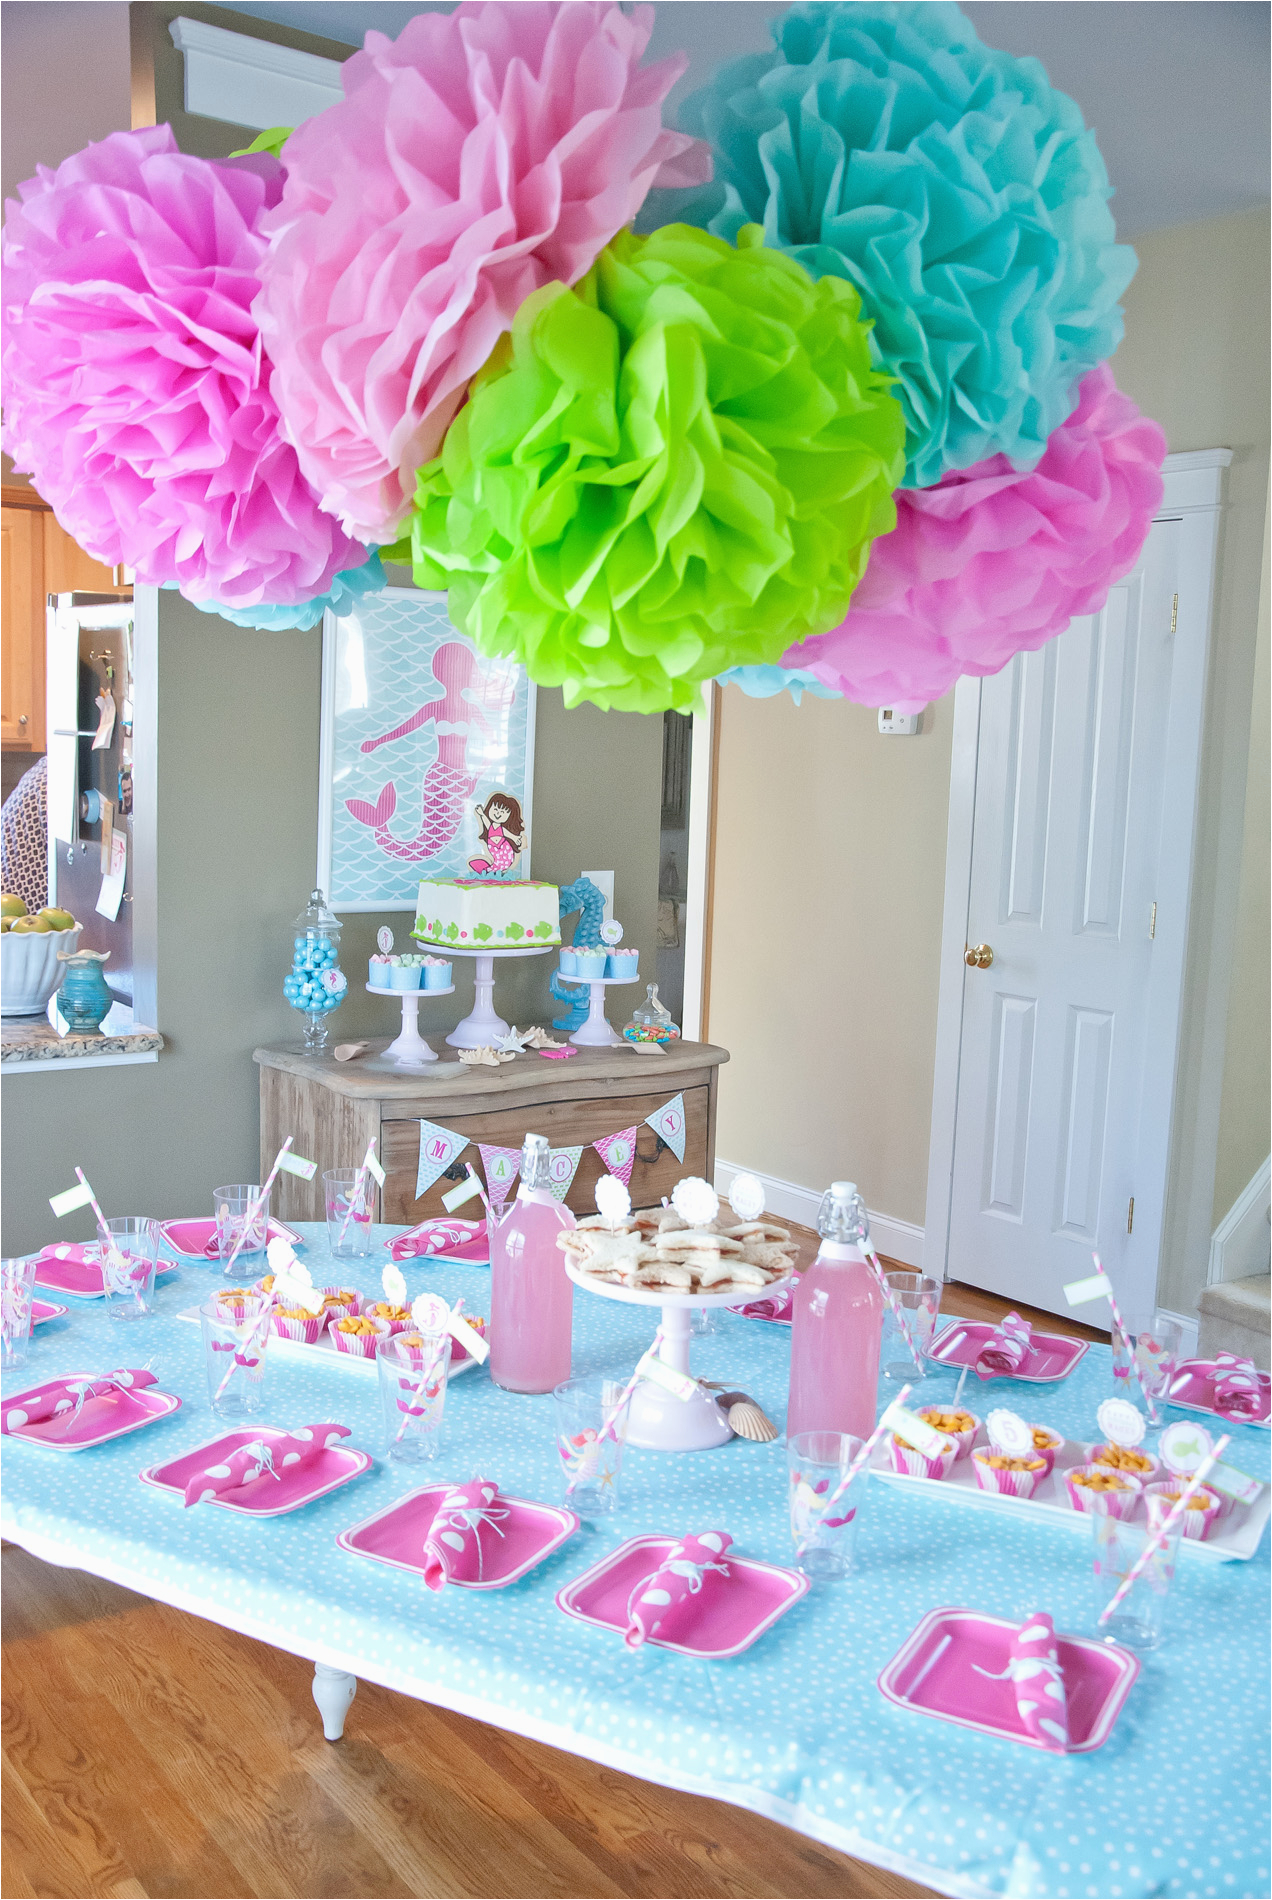 Table Decorations for Birthday Parties A Dreamy Mermaid Birthday Party anders Ruff Custom